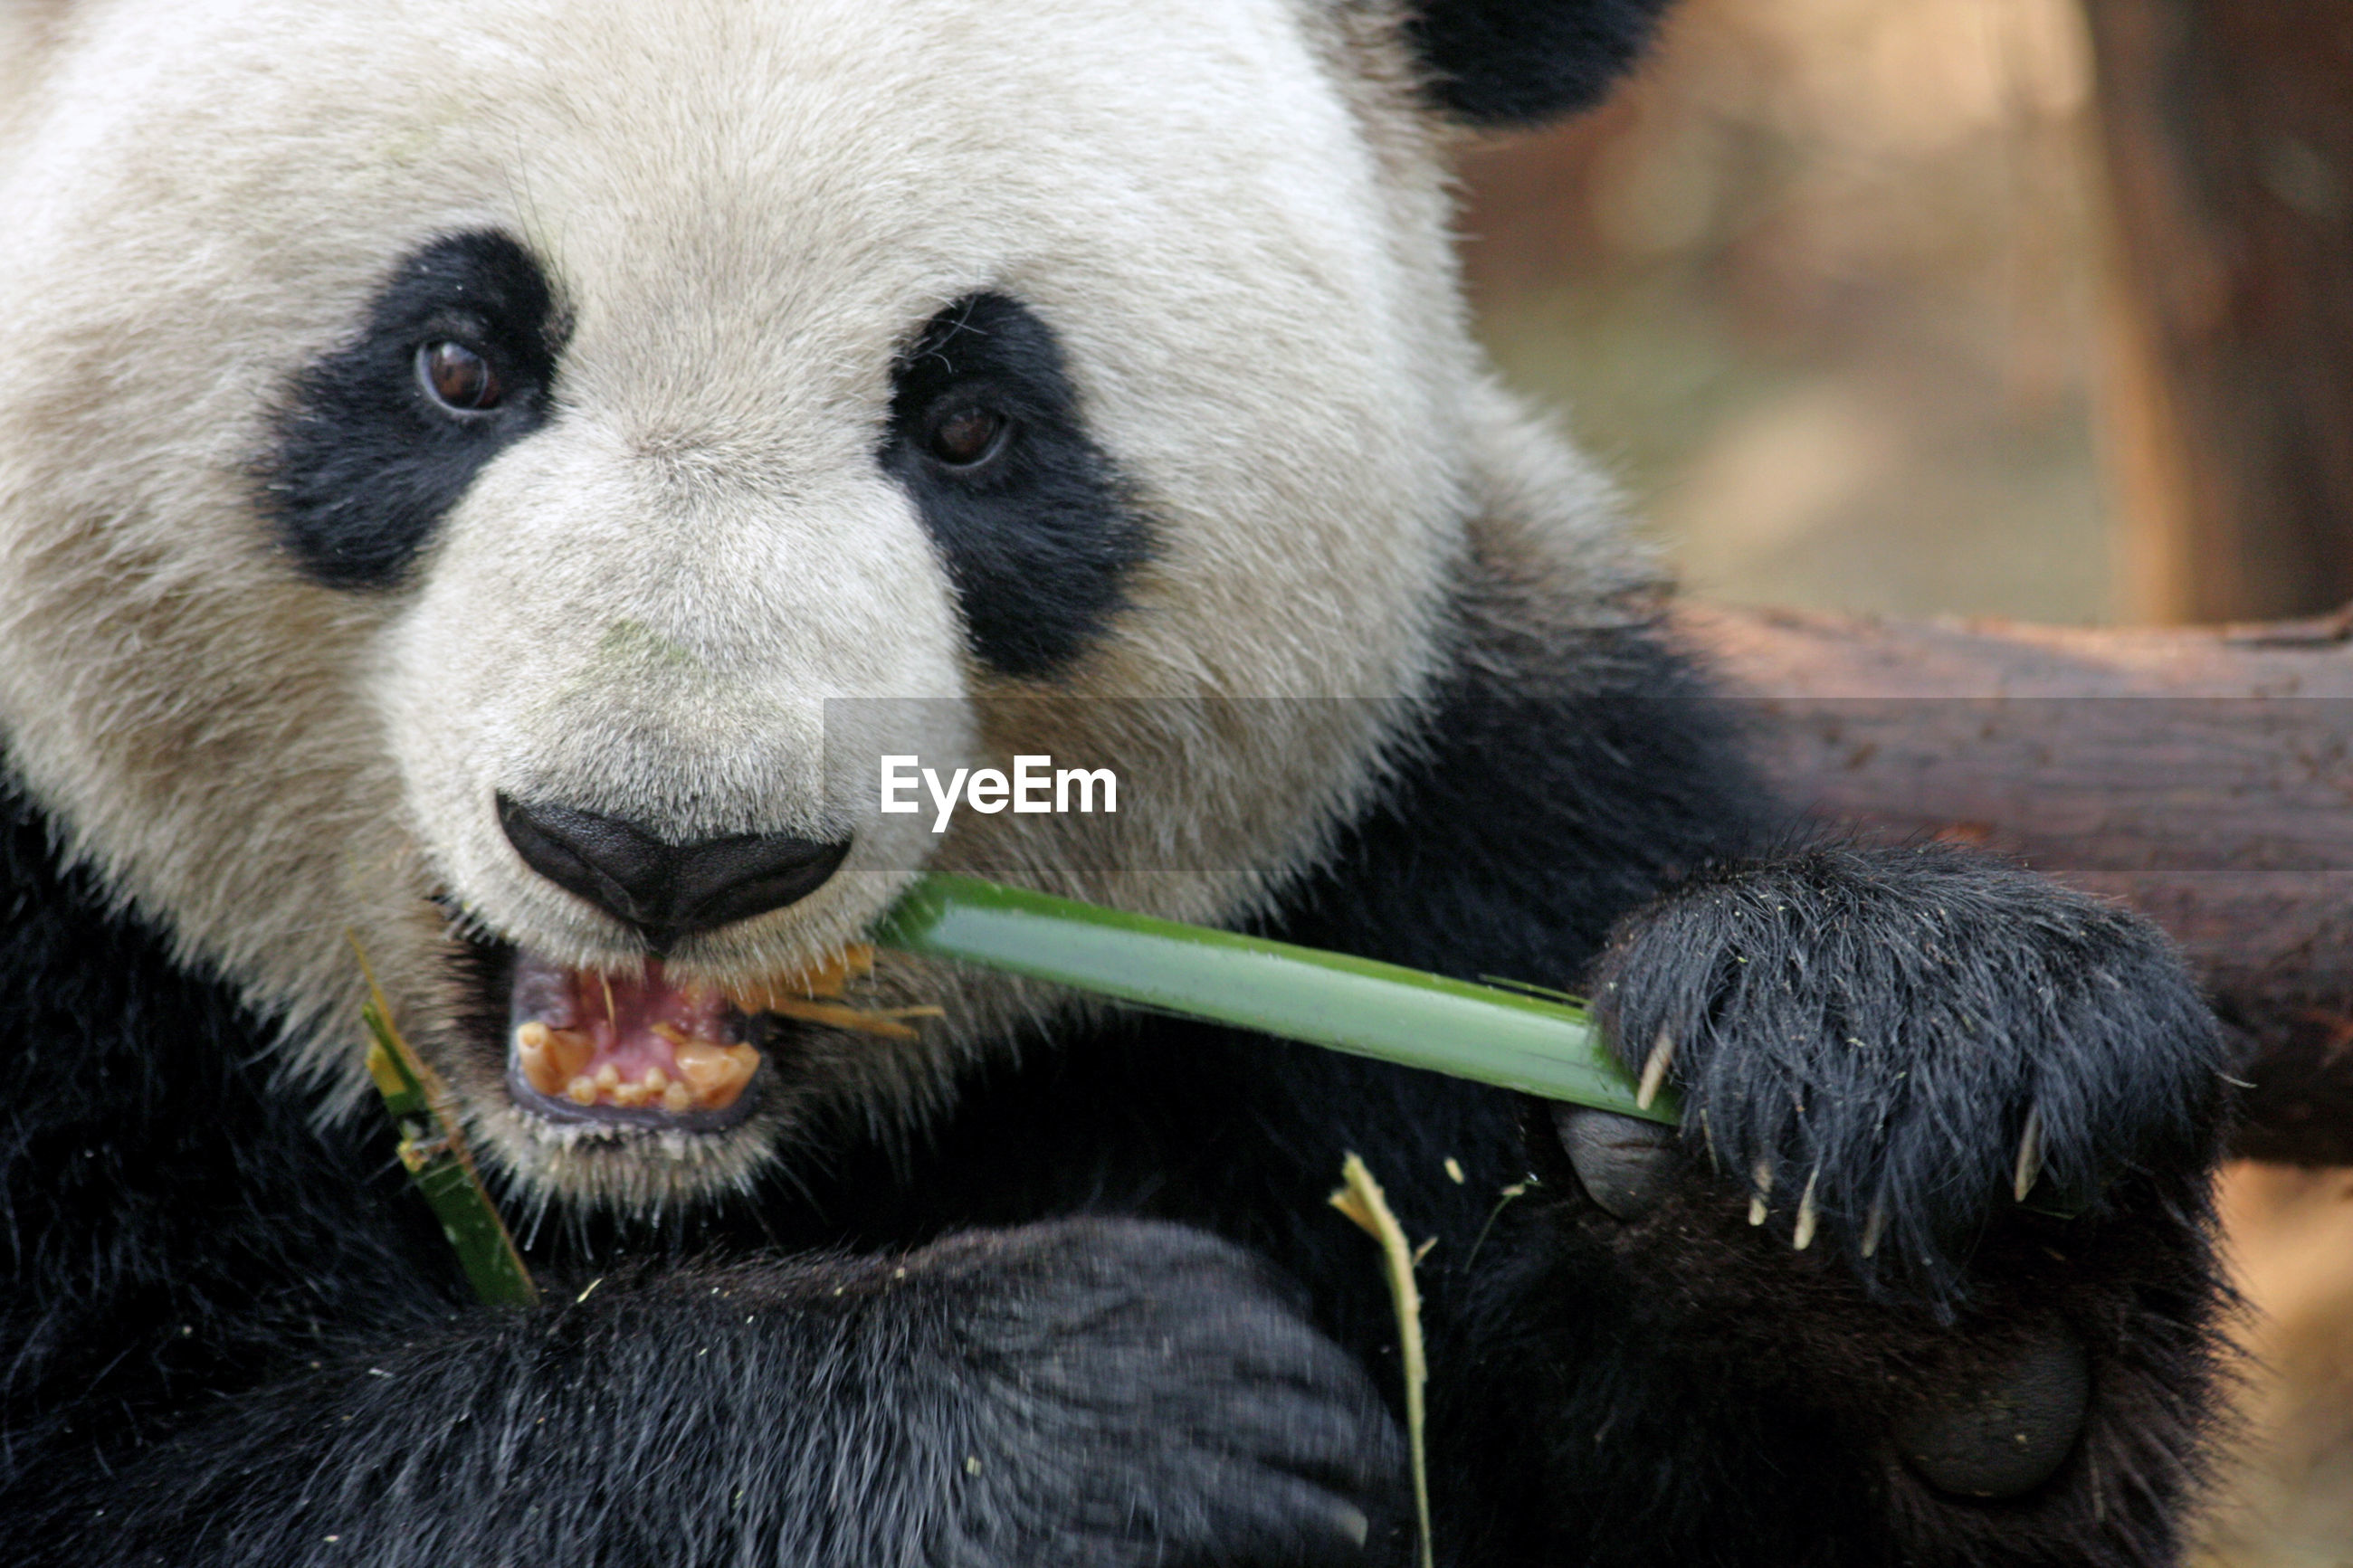 Close-up of giant panda eating bamboo